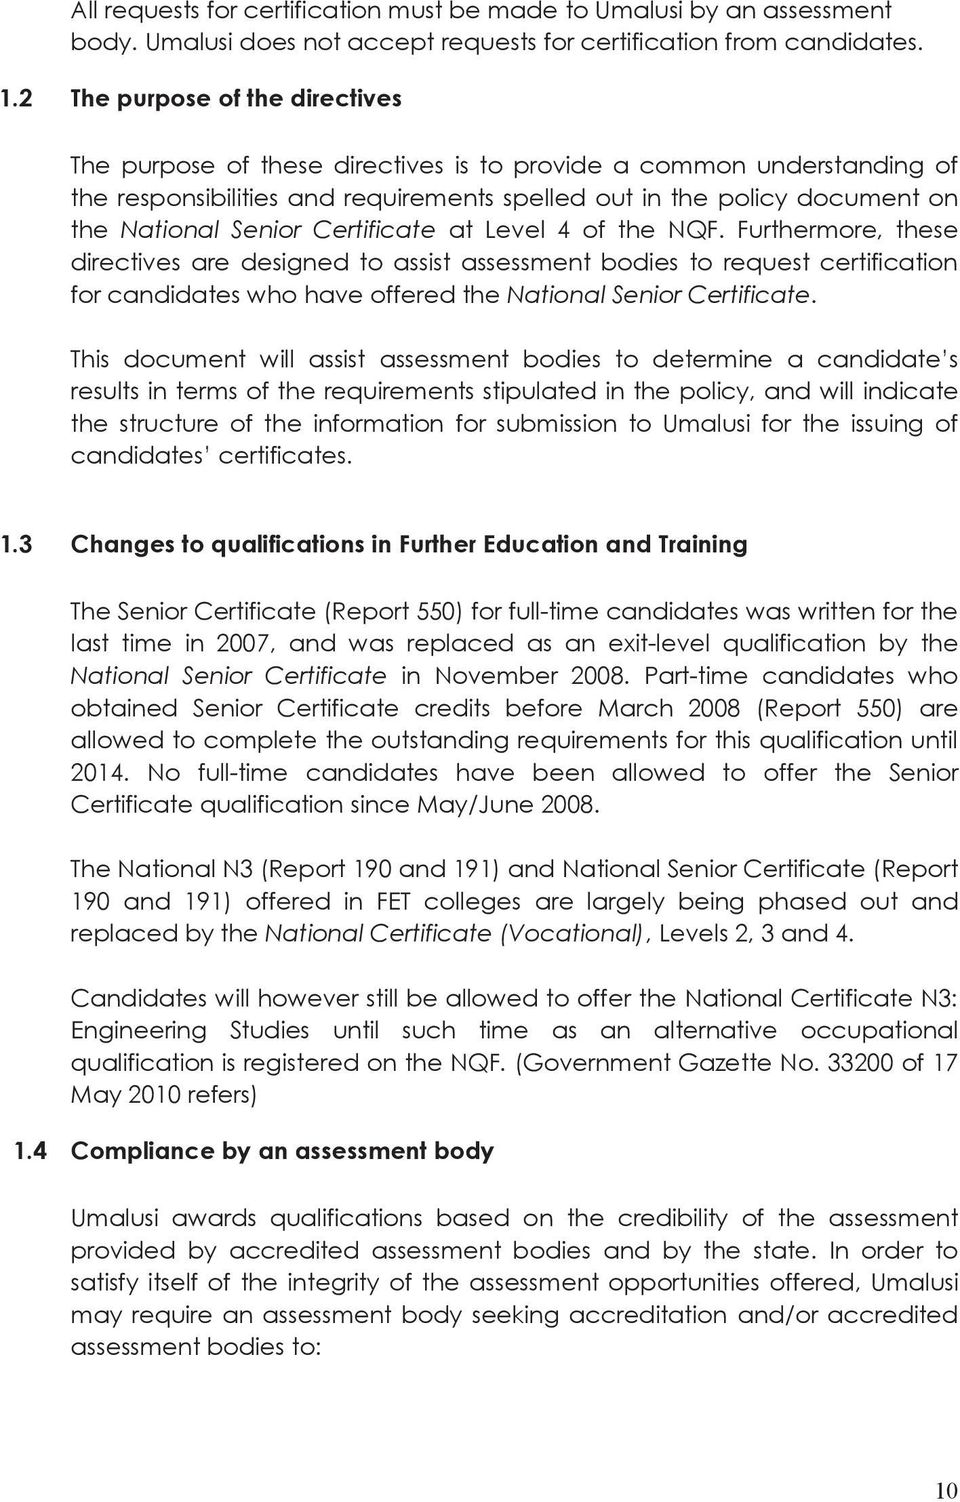 Certificate at Level 4 of the NQF. Furthermore, these directives are designed to assist assessment bodies to request certification for candidates who have offered the National Senior Certificate.